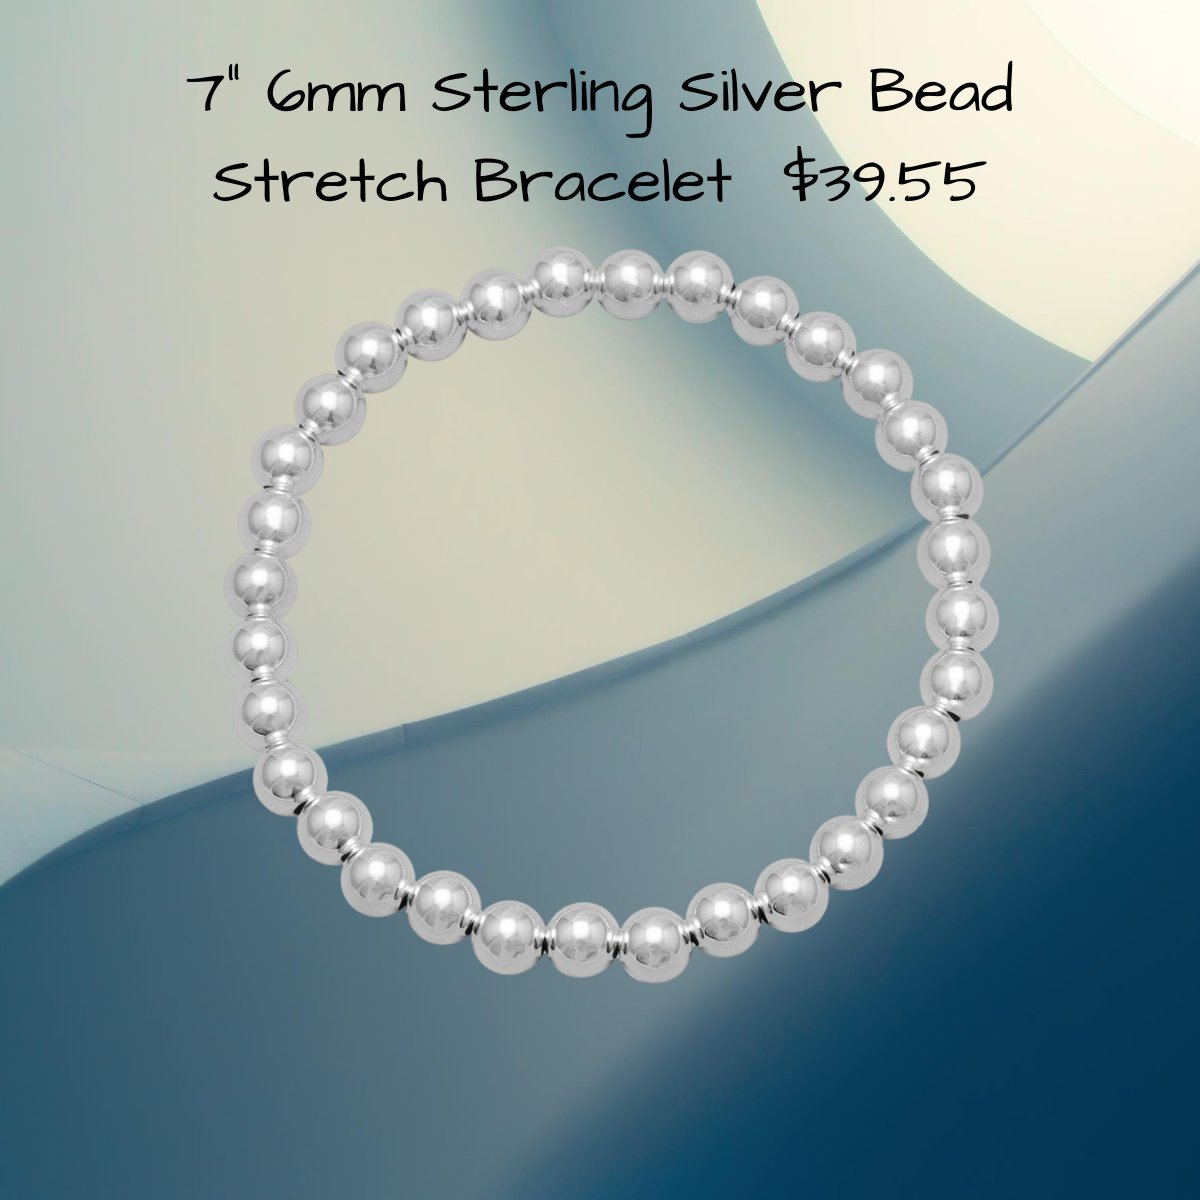 Sterling Silver Bead 7 Inch Stretch Bracelet With 8 mm Beads